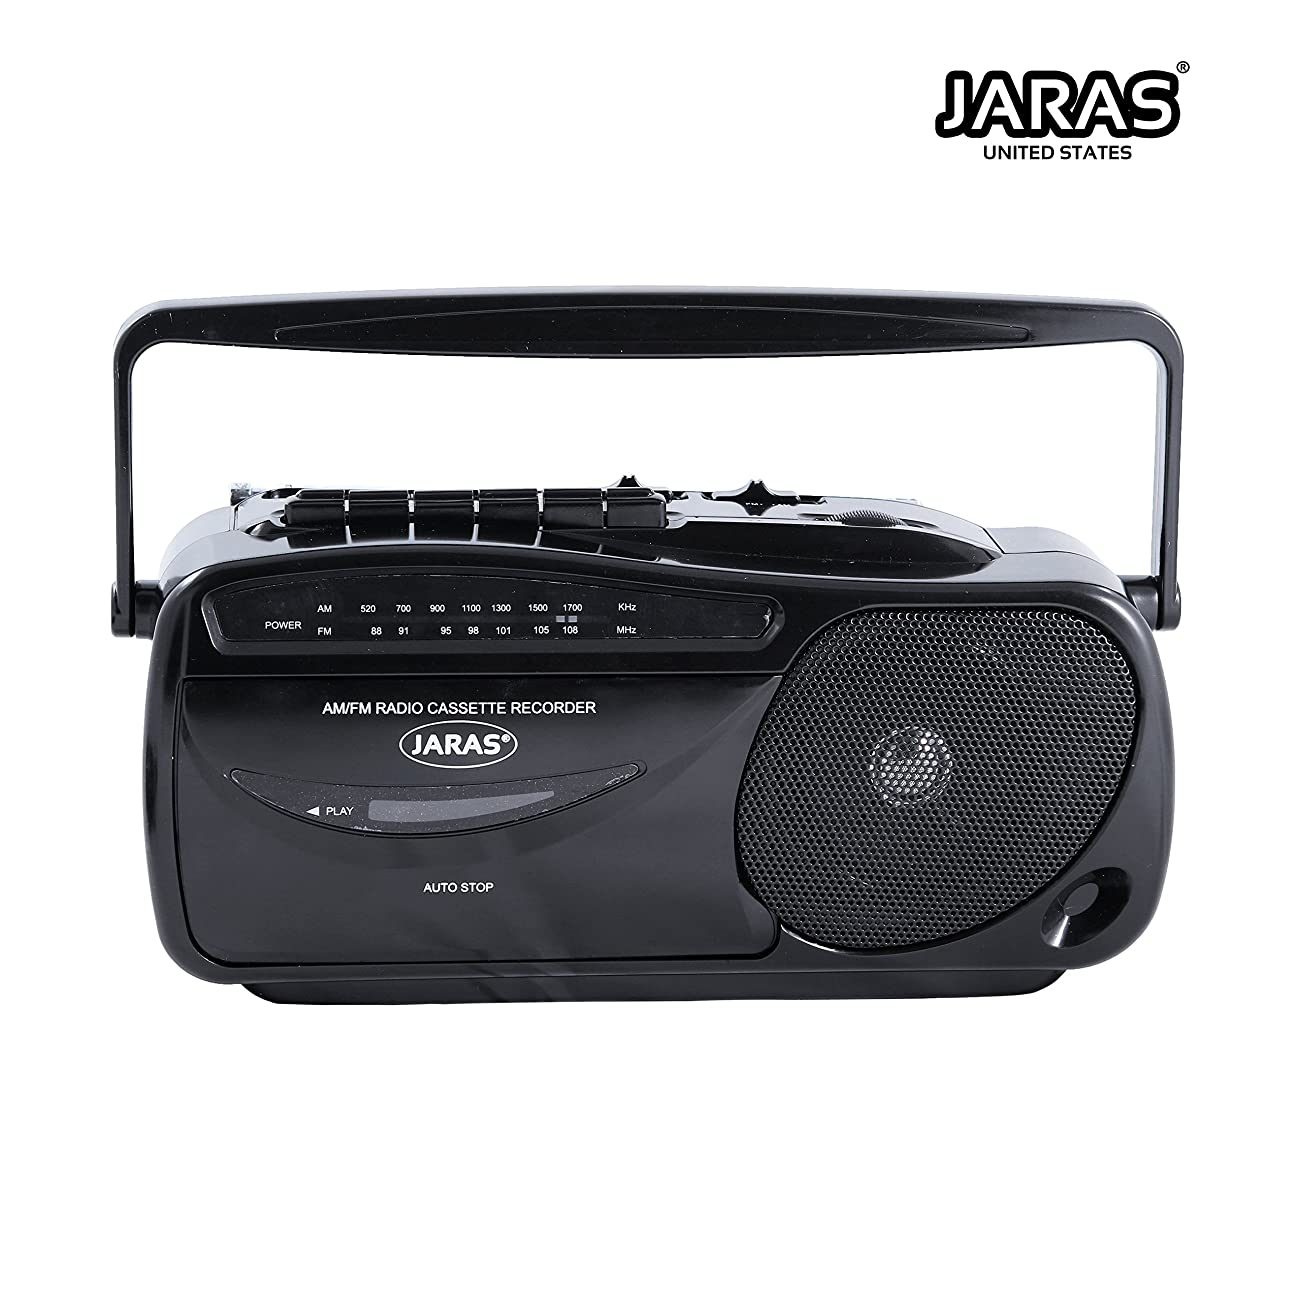 Jaras JJ-2618 Limited Edition Portable Boombox Tape Cassette Player/recorder with AM/FM Radio Stereo Speakers & Headphone Jack 0